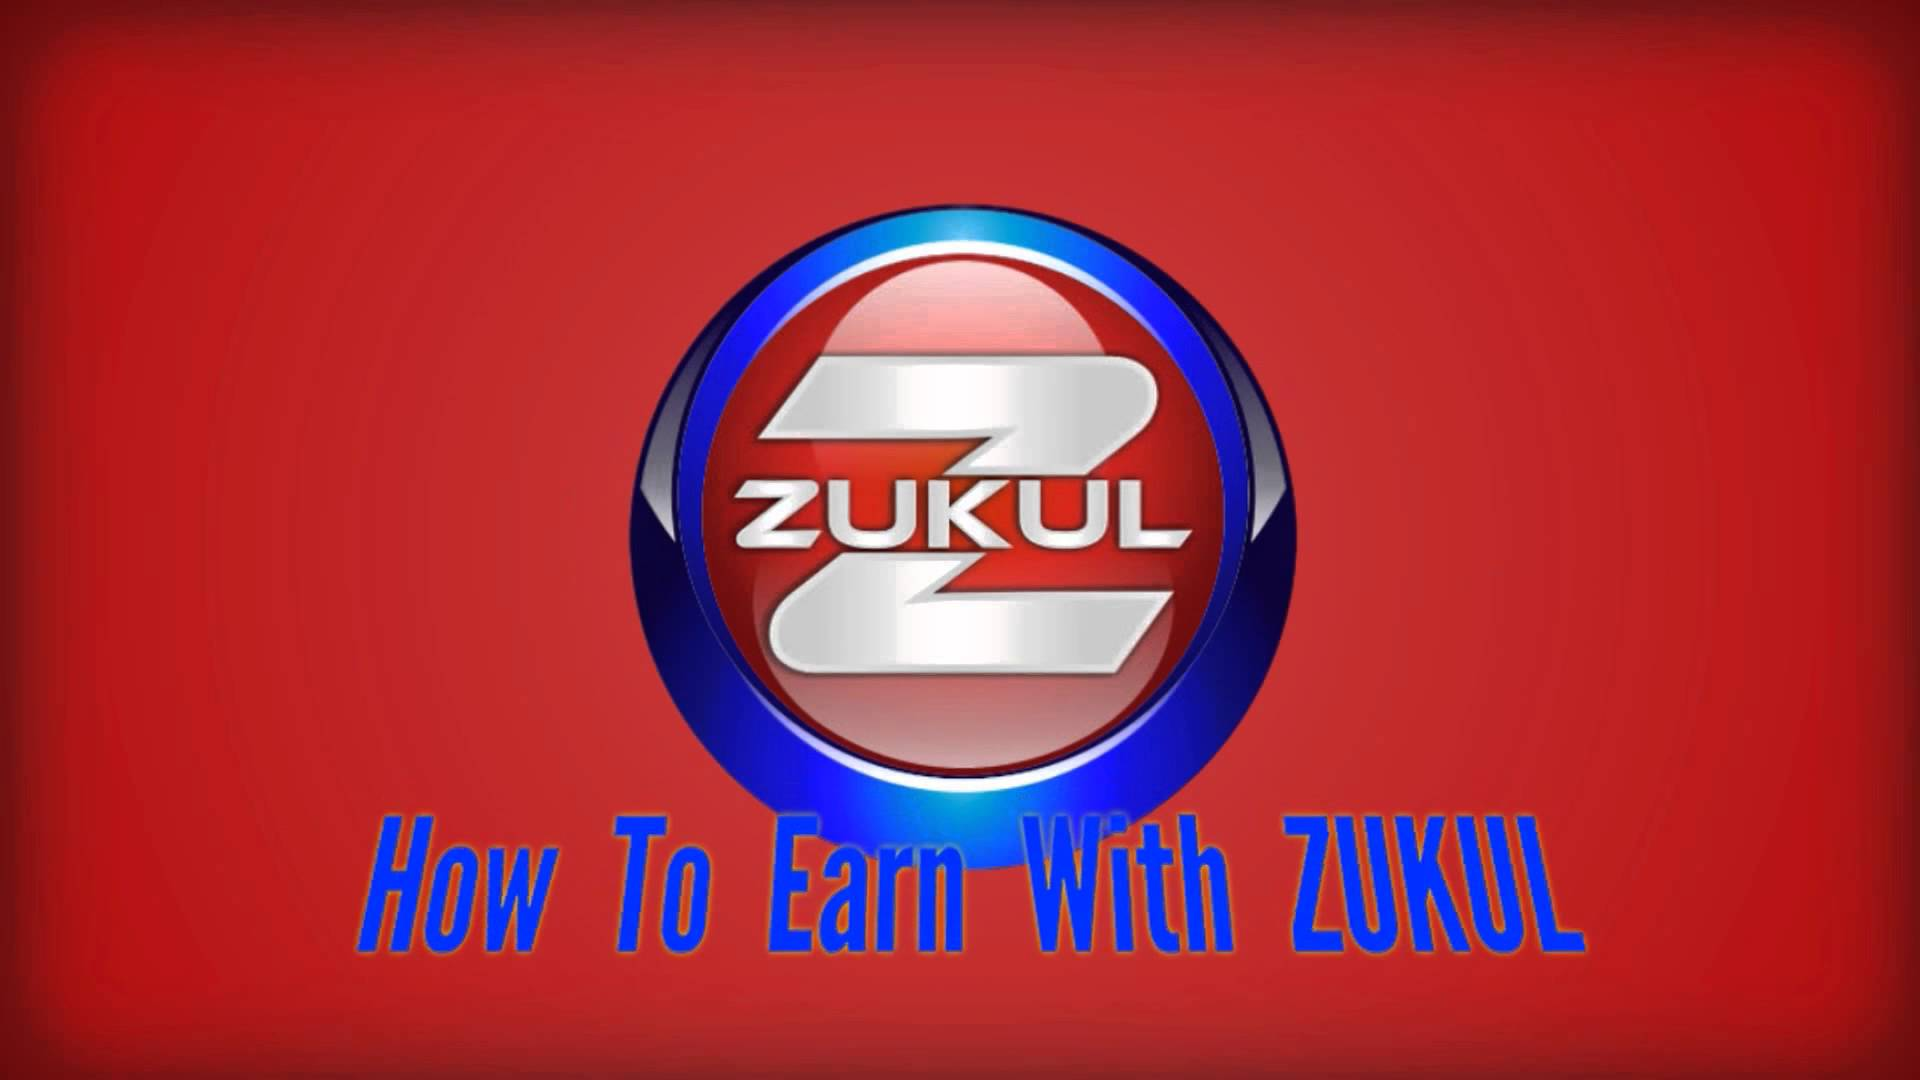 Zukul Review – Does Zukul Deliver?